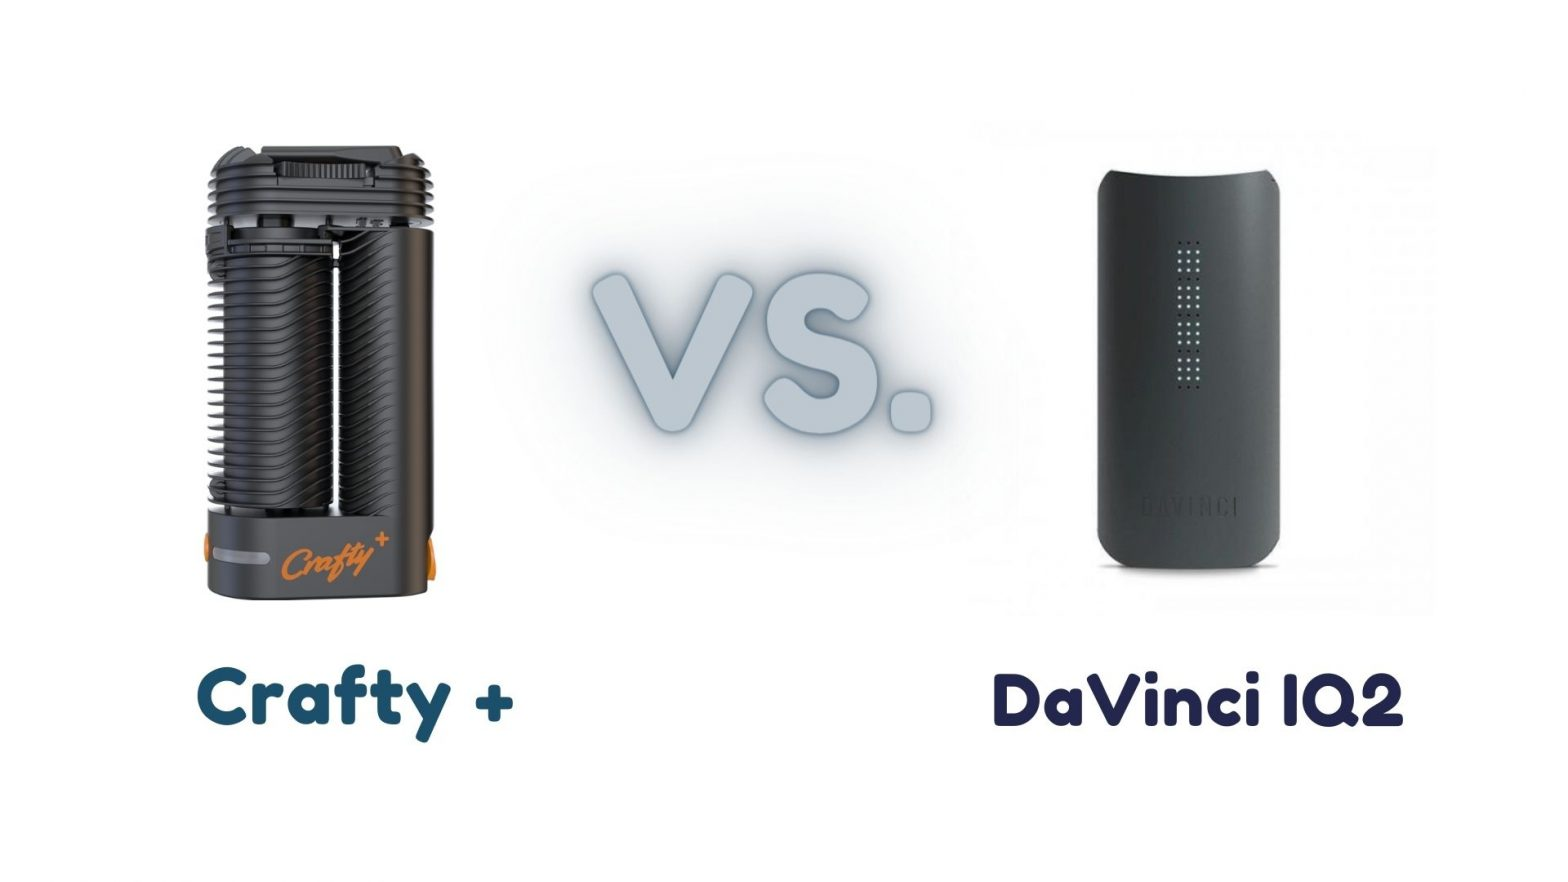 Crafty + VS DavinciIQ